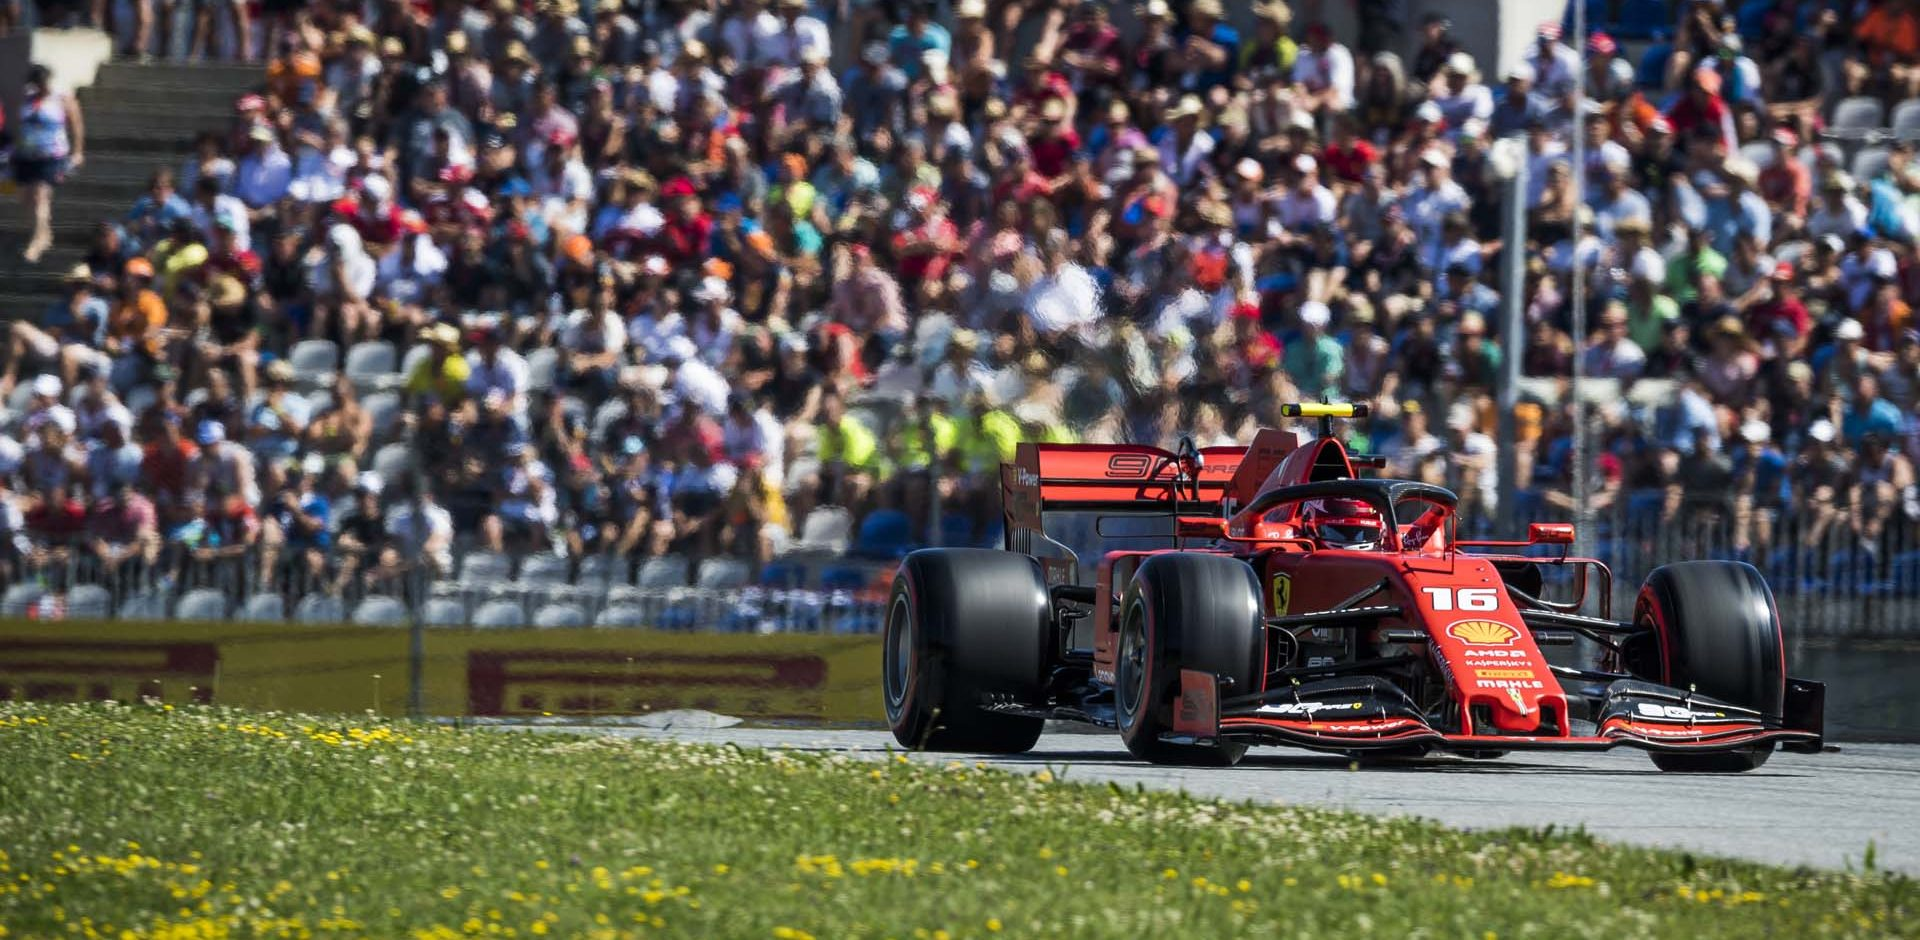 Charles Leclerc races at the FIA Formula One World Championship 2019 in Spielberg, Austria on June 29, 2019 // Philip Platzer/Red Bull Content Pool // AP-1ZSYE2ZQ51W11 // Usage for editorial use only // Please go to www.redbullcontentpool.com for further information. //